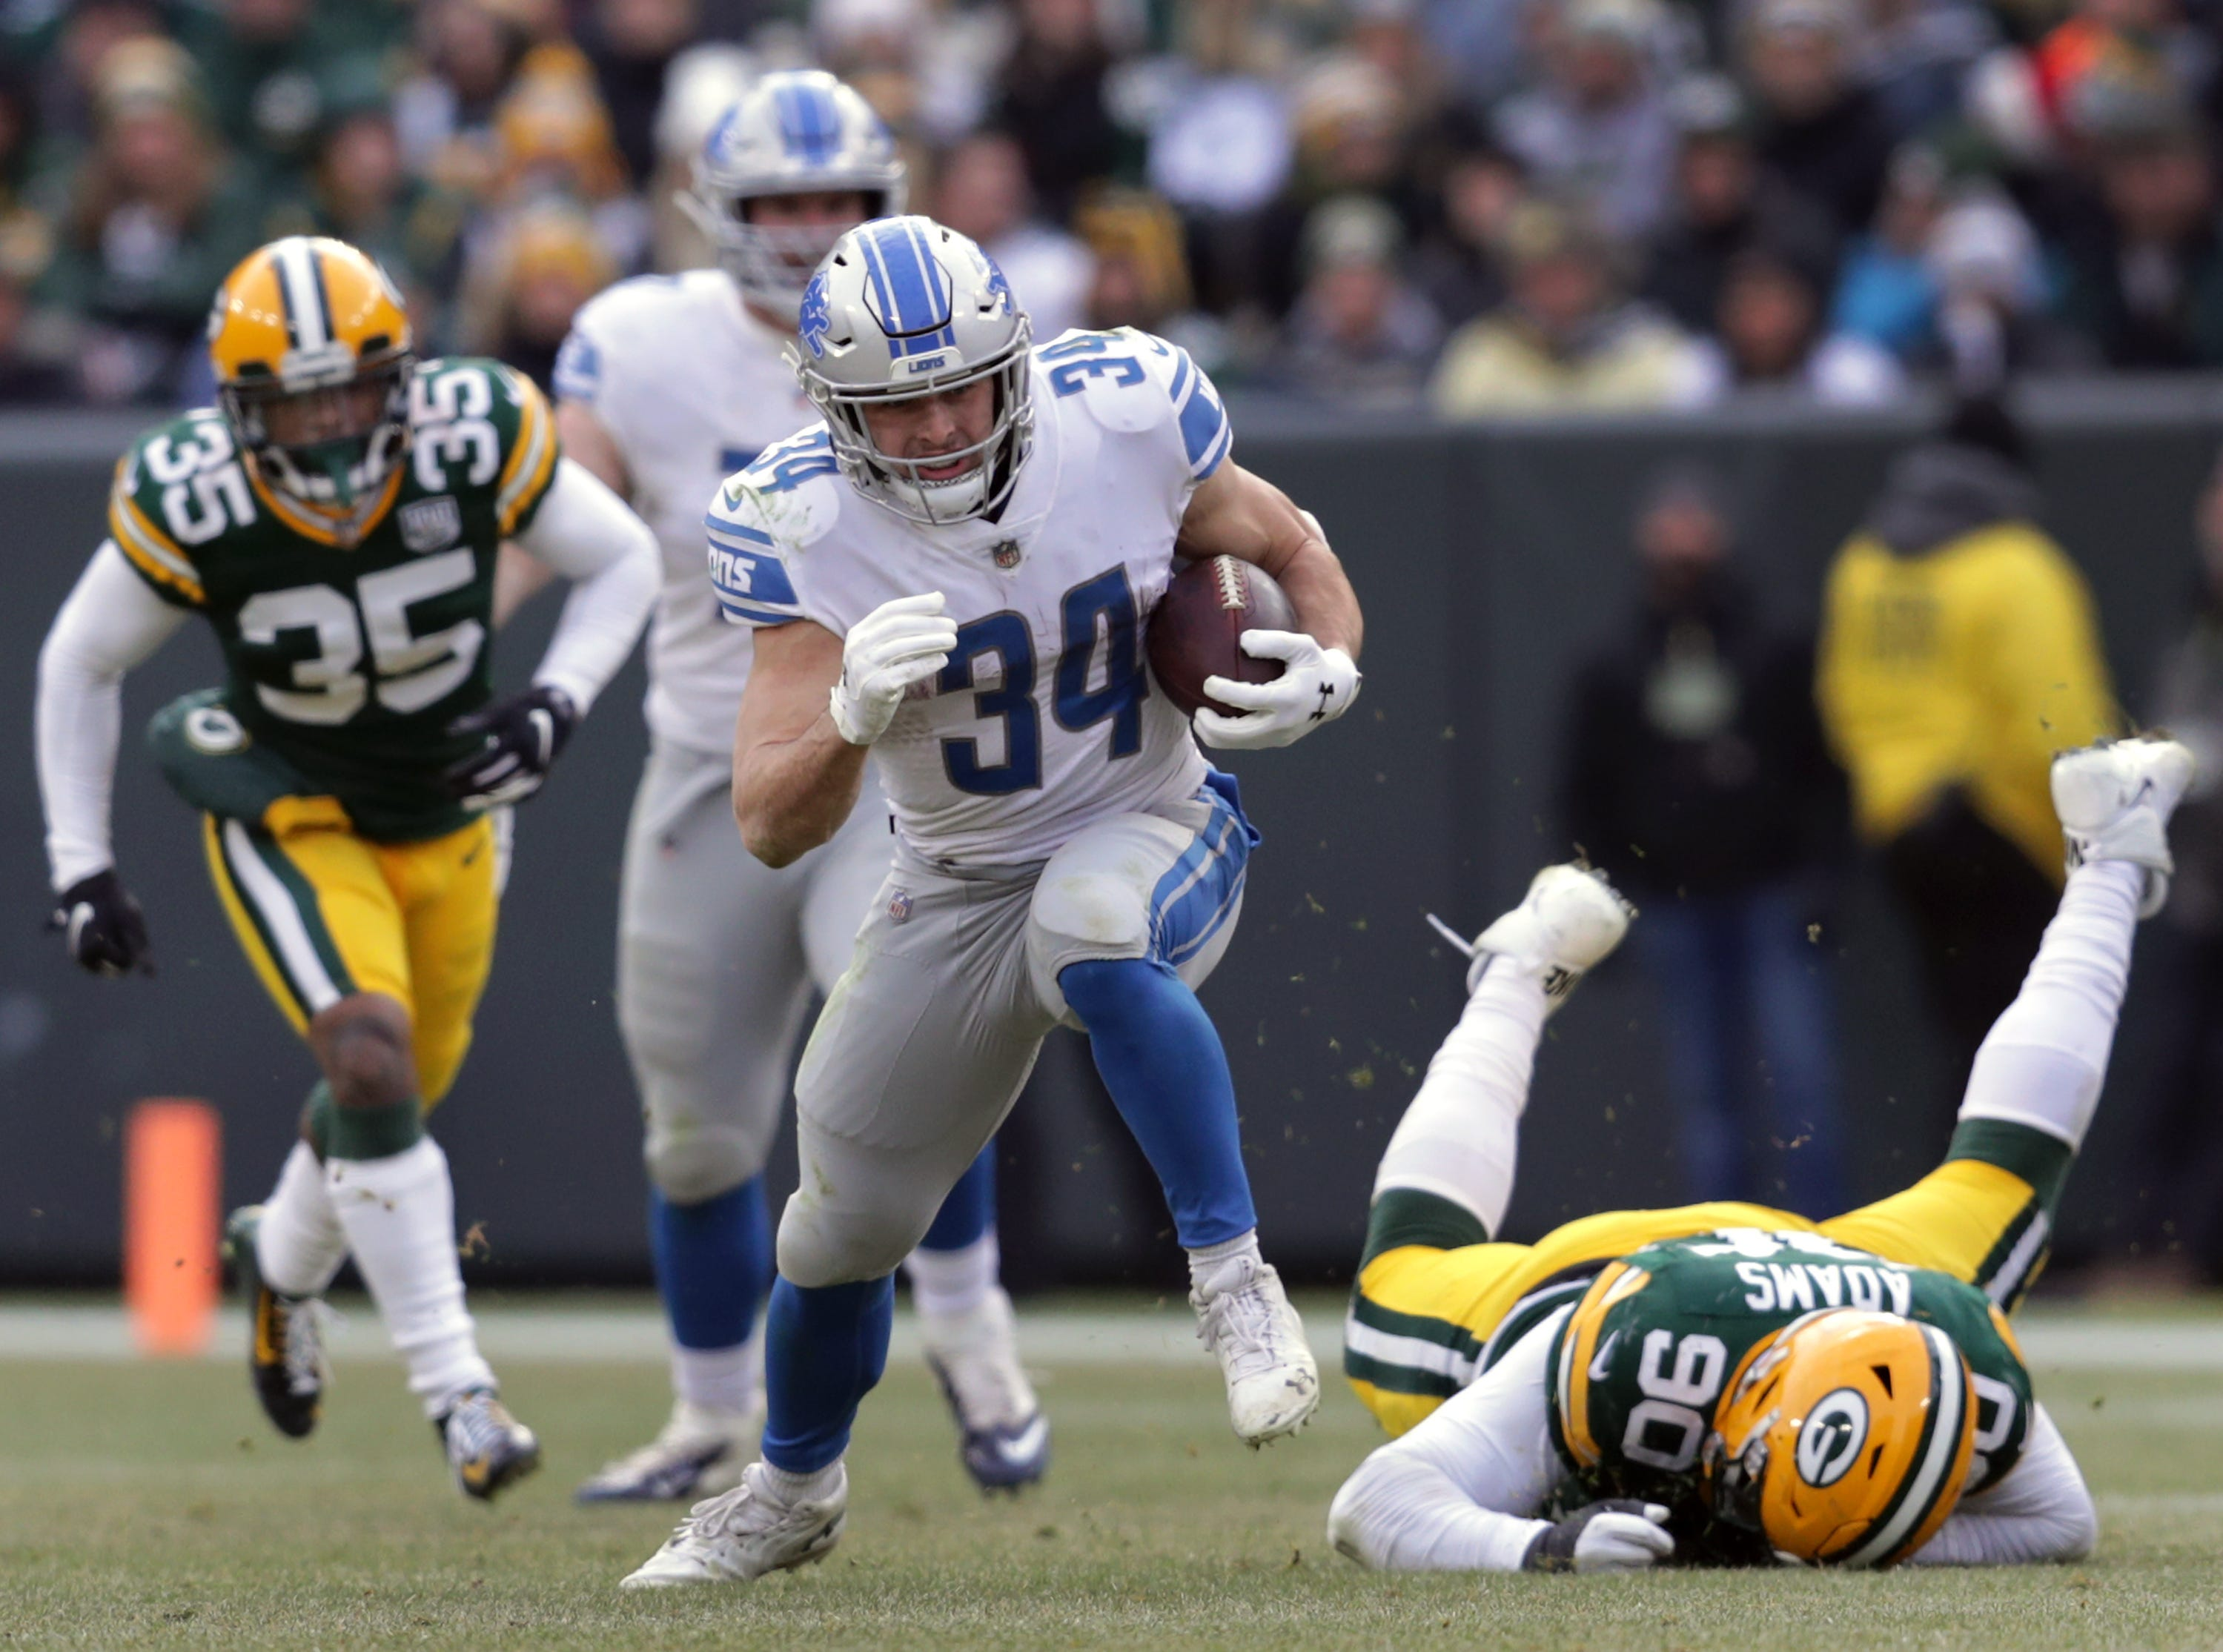 Detroit Lions running back Zach Zenner rushes against the Green Bay Packers during their football game on Sunday, December 30, 2018, at Lambeau Field in Green Bay, Wis. Detroit defeated Green Bay 31 to 0.